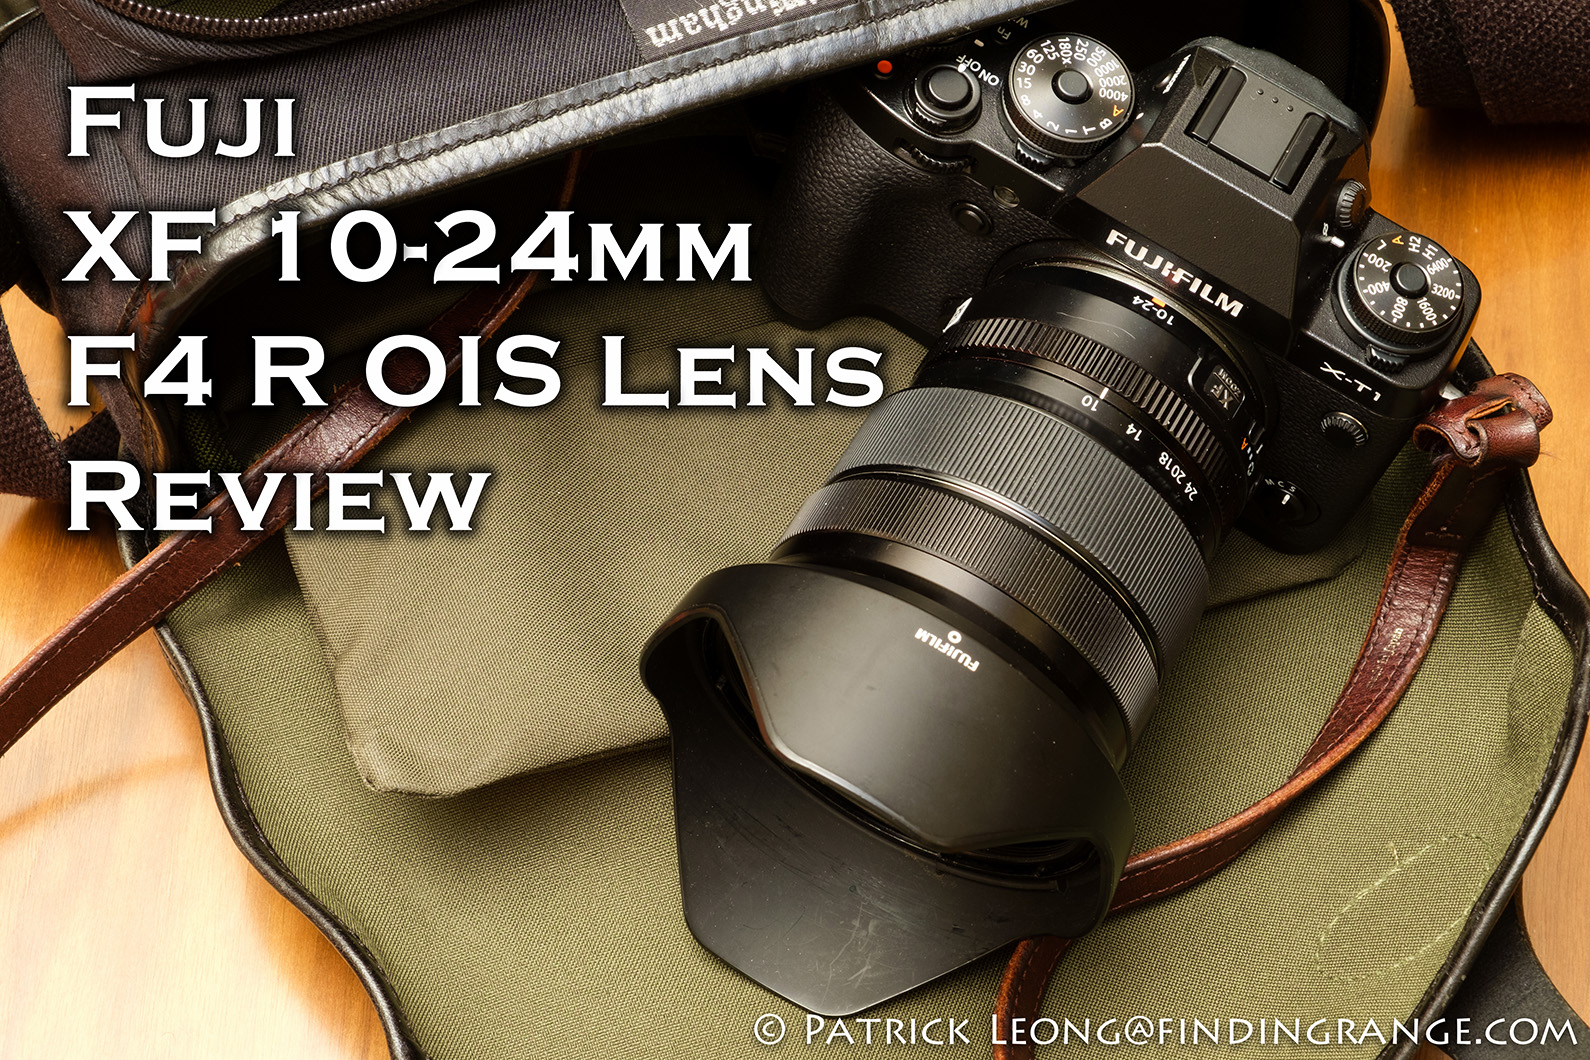 Fuji-X-T1-XF-10-24mm-F4-R-OIS-Lens-Review-1 copy